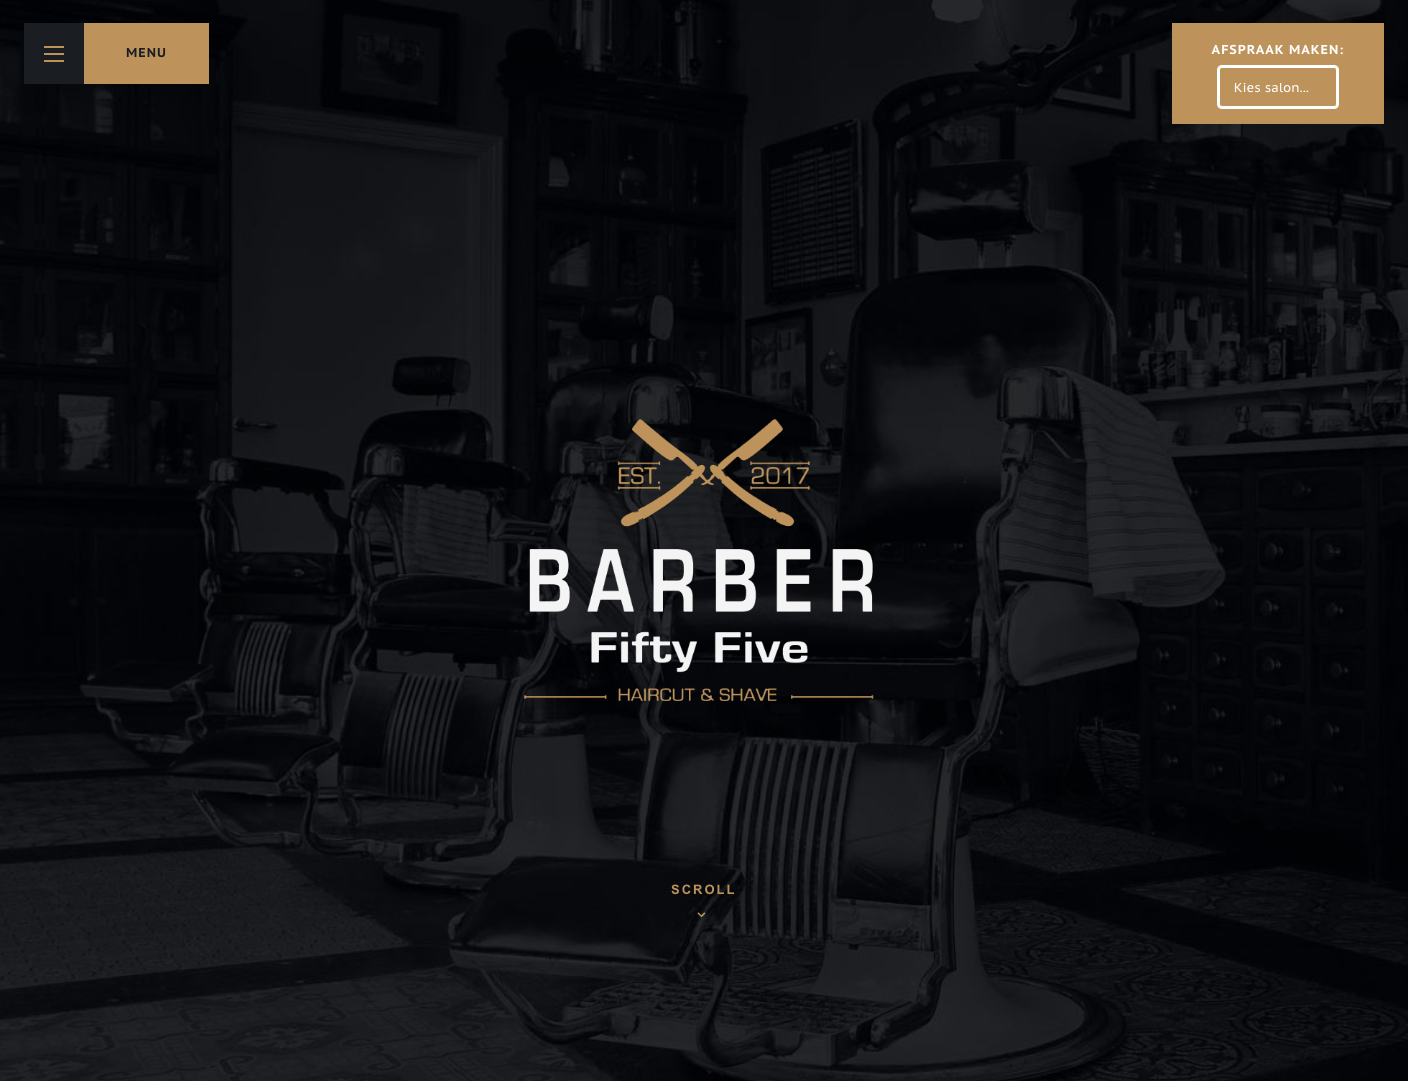 Barber Fifty Five